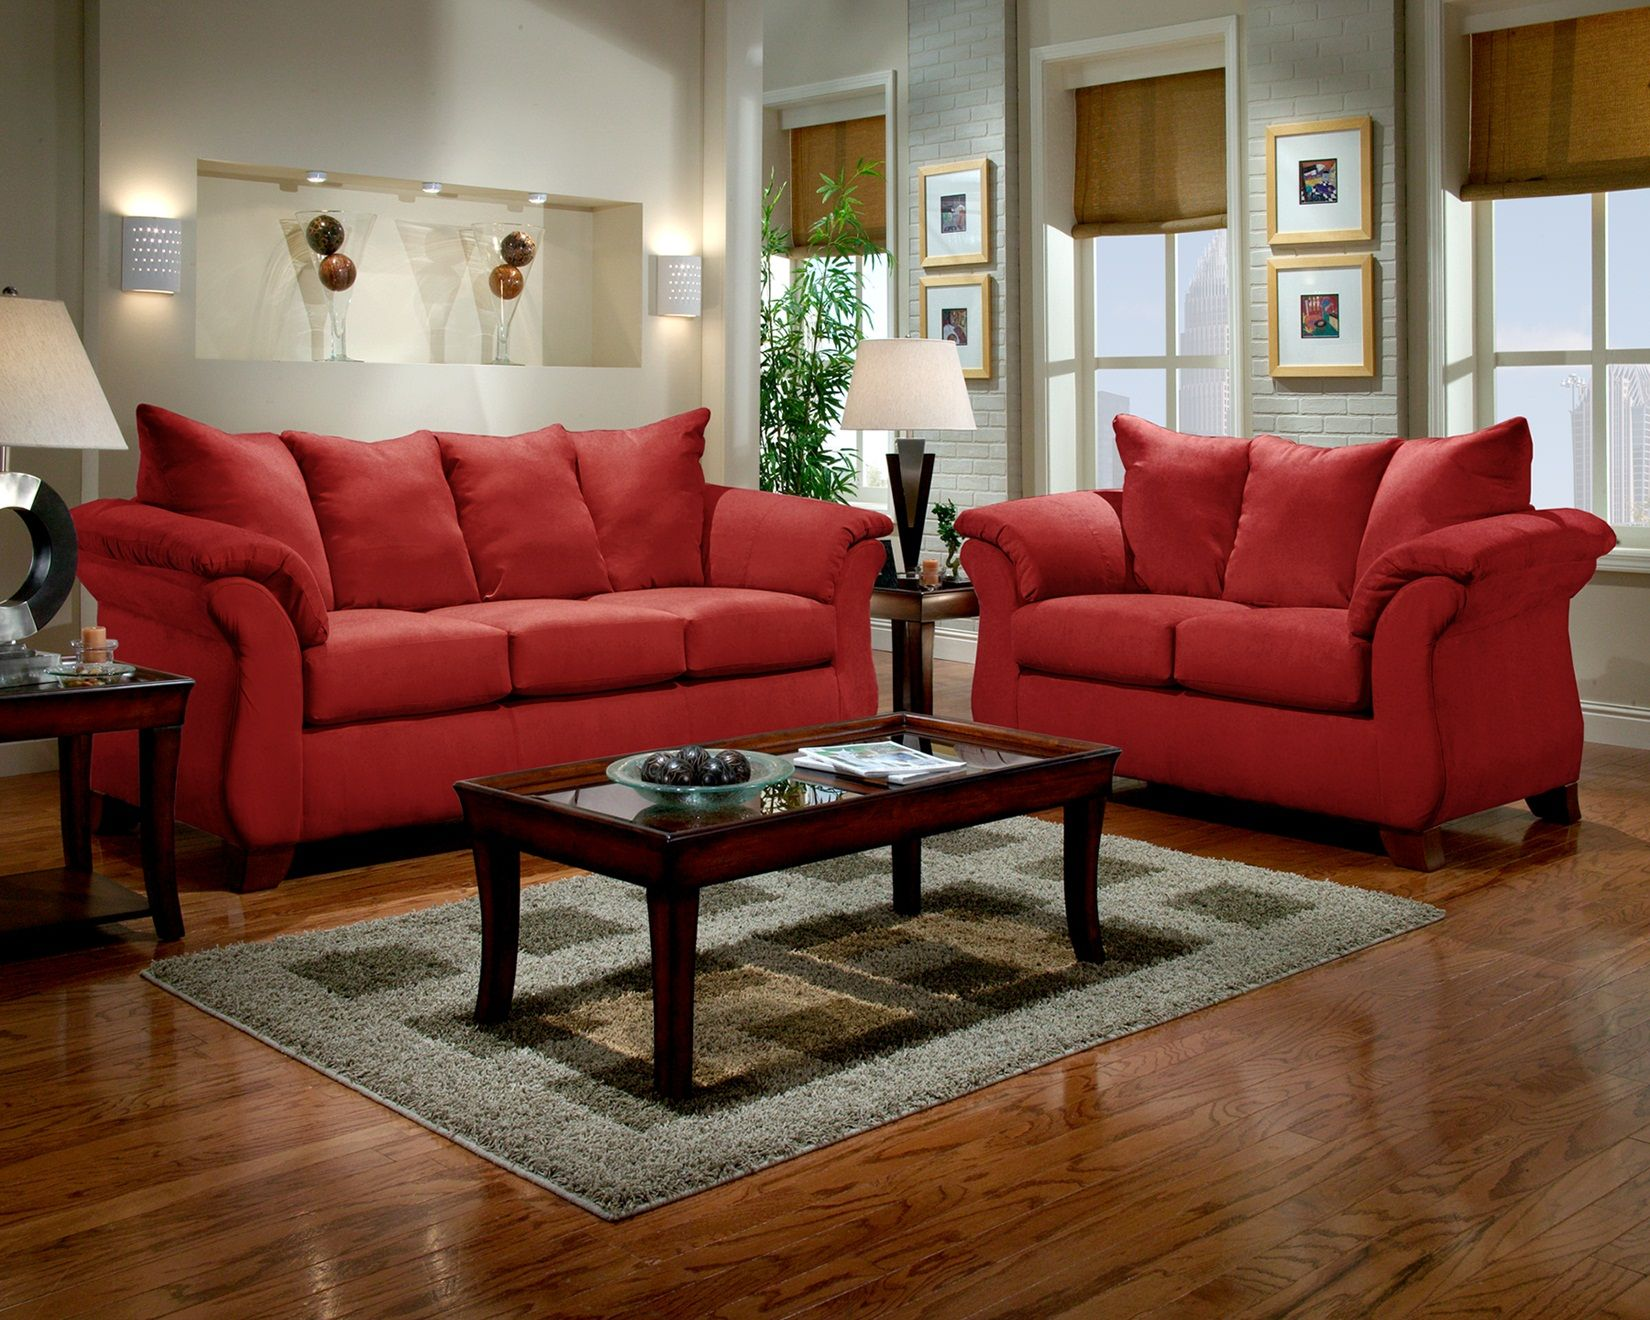 Brilliant Sensations Red Microfiber Pillow Back Sofa And Loveseat Set Lamtechconsult Wood Chair Design Ideas Lamtechconsultcom